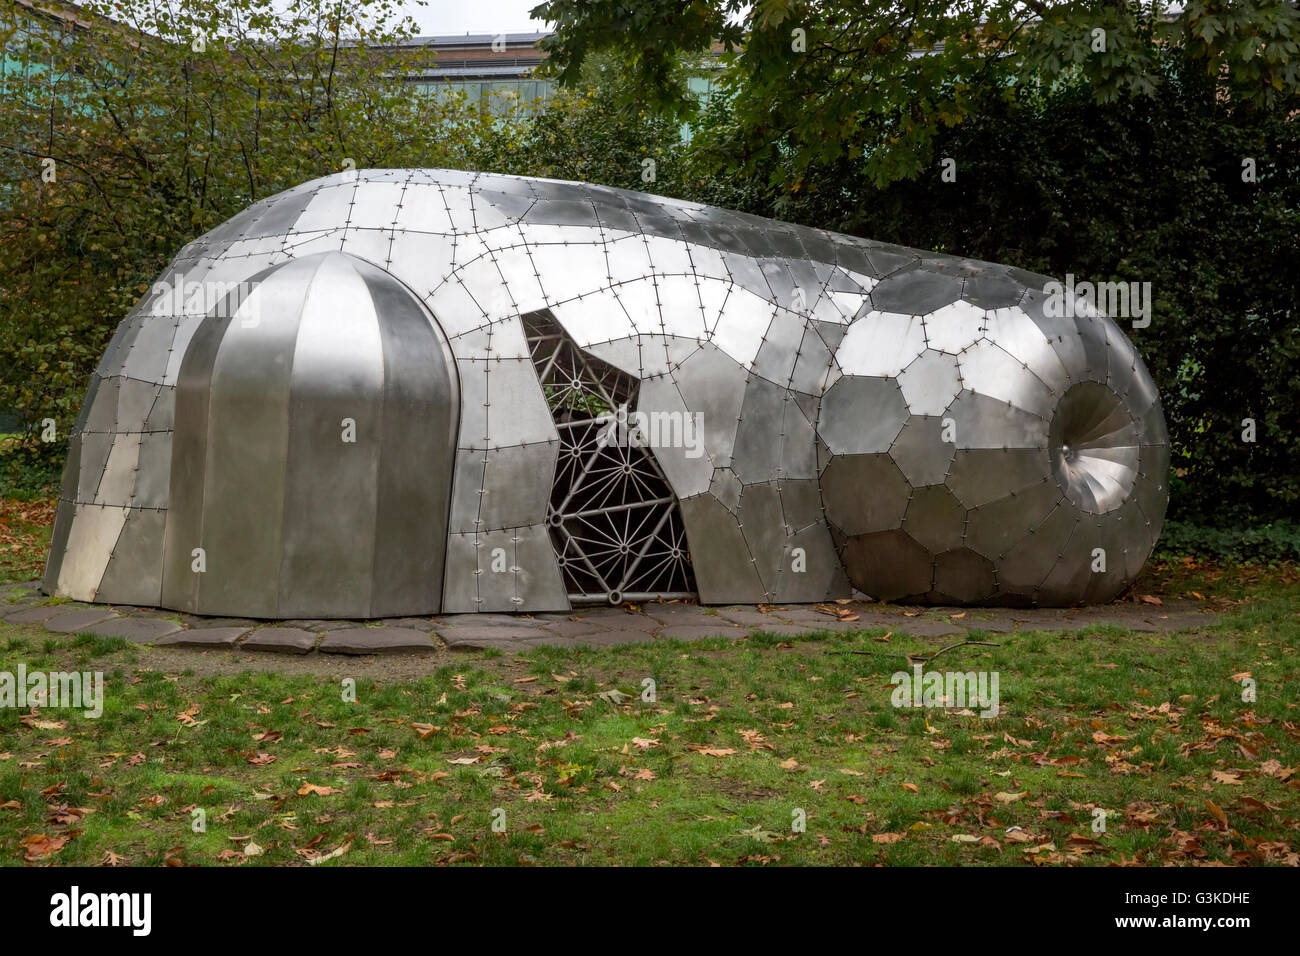 2004 stainless and galvanized steel sculpture by Cris Bruch titled: Department of Forensic Morphology Annex - Stock Image